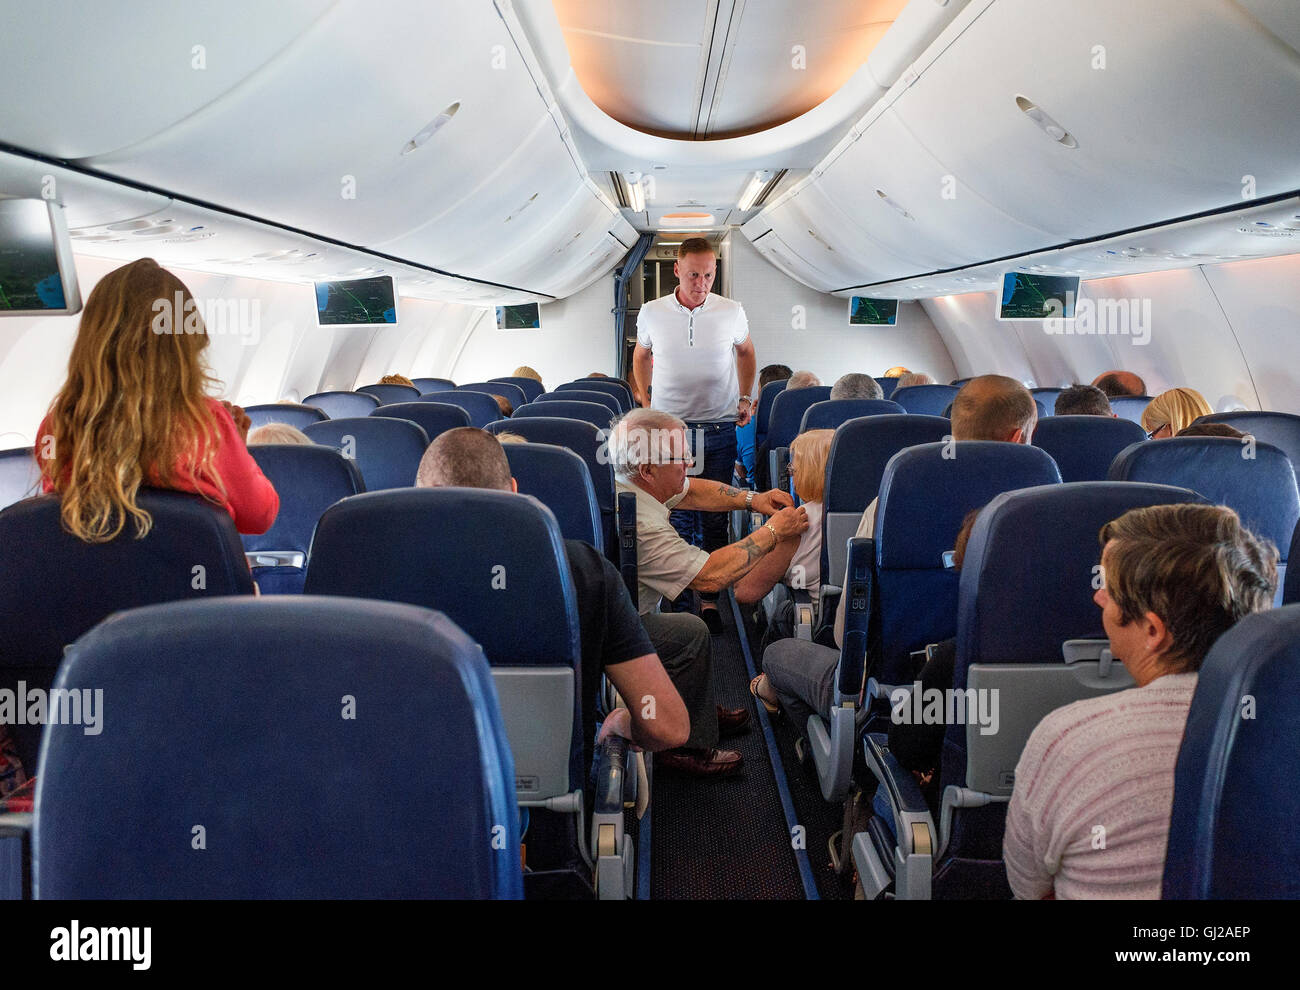 Inside the cabin of a Holiday charter flight airplane - Stock Image